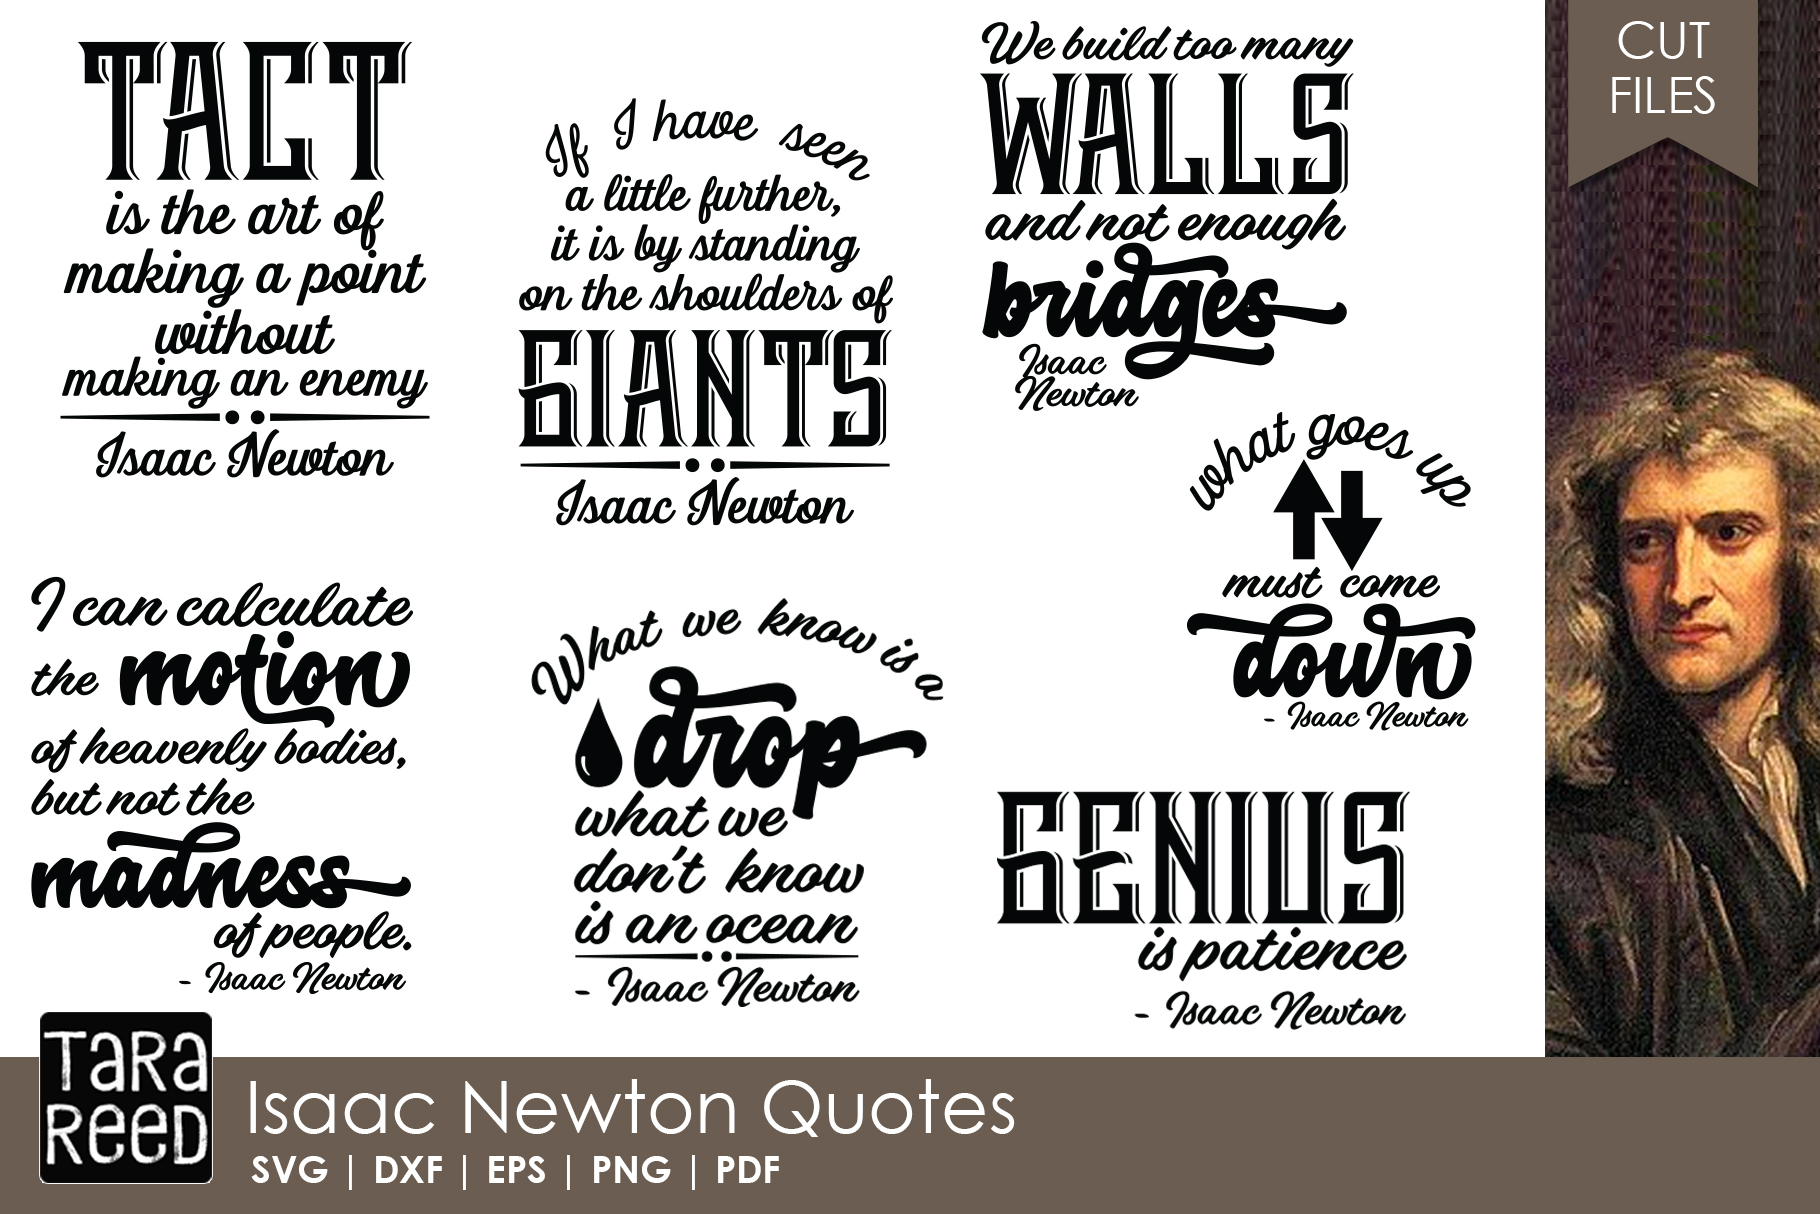 Isaac Newton Quotes - Quote SVG and Cut Files for Crafters example image 1